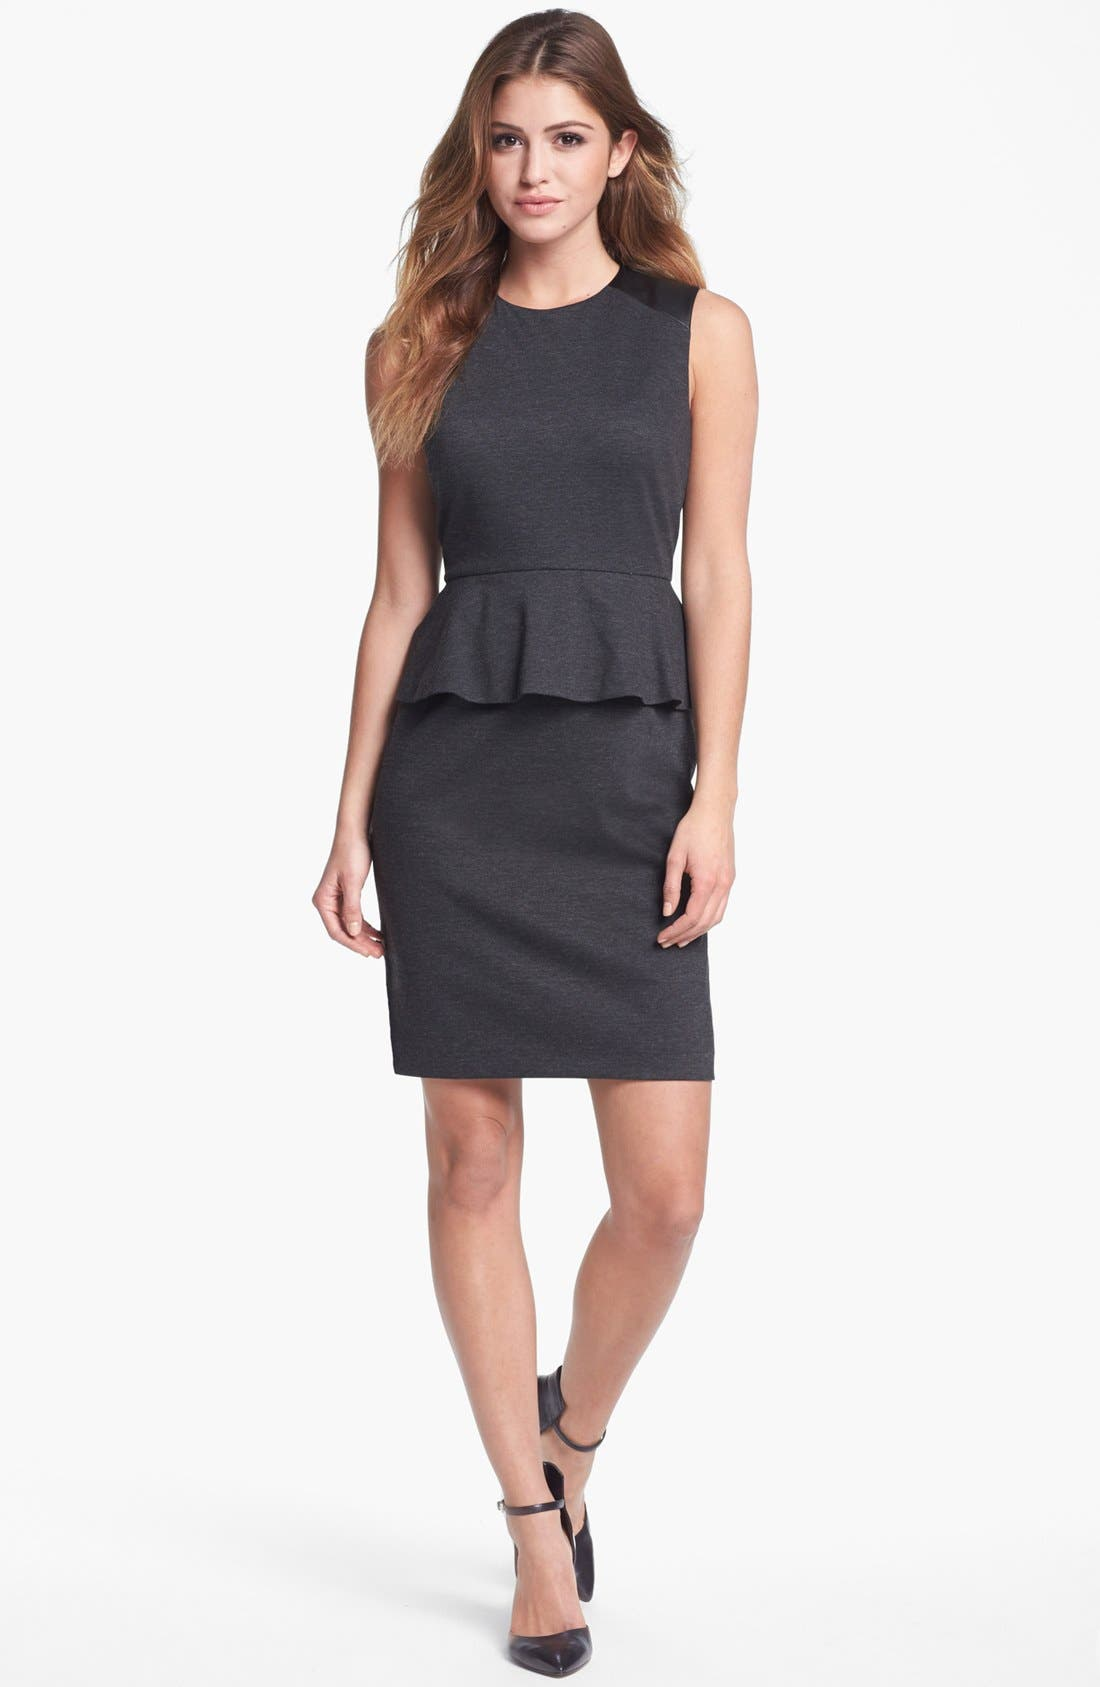 Alternate Image 1 Selected - Vince Camuto Sleeveless Peplum Dress (Nordstrom Online Exclusive)